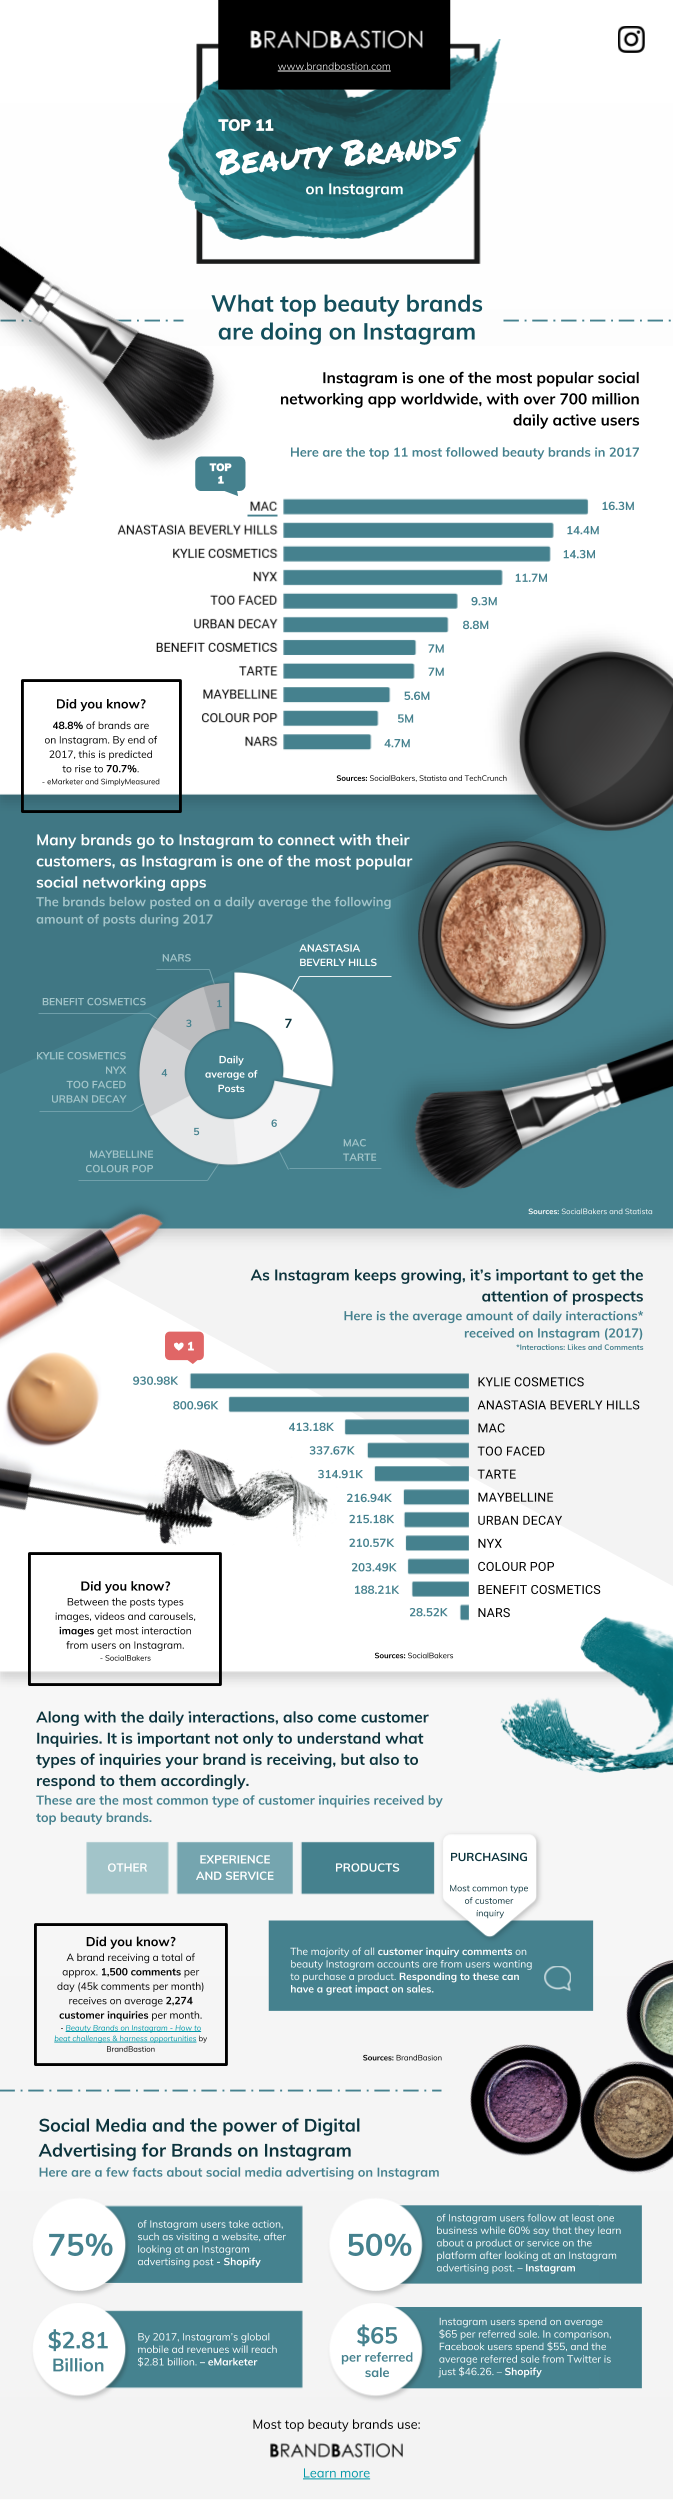 What top beauty brands are doing on Instagram - Full Infographic Report